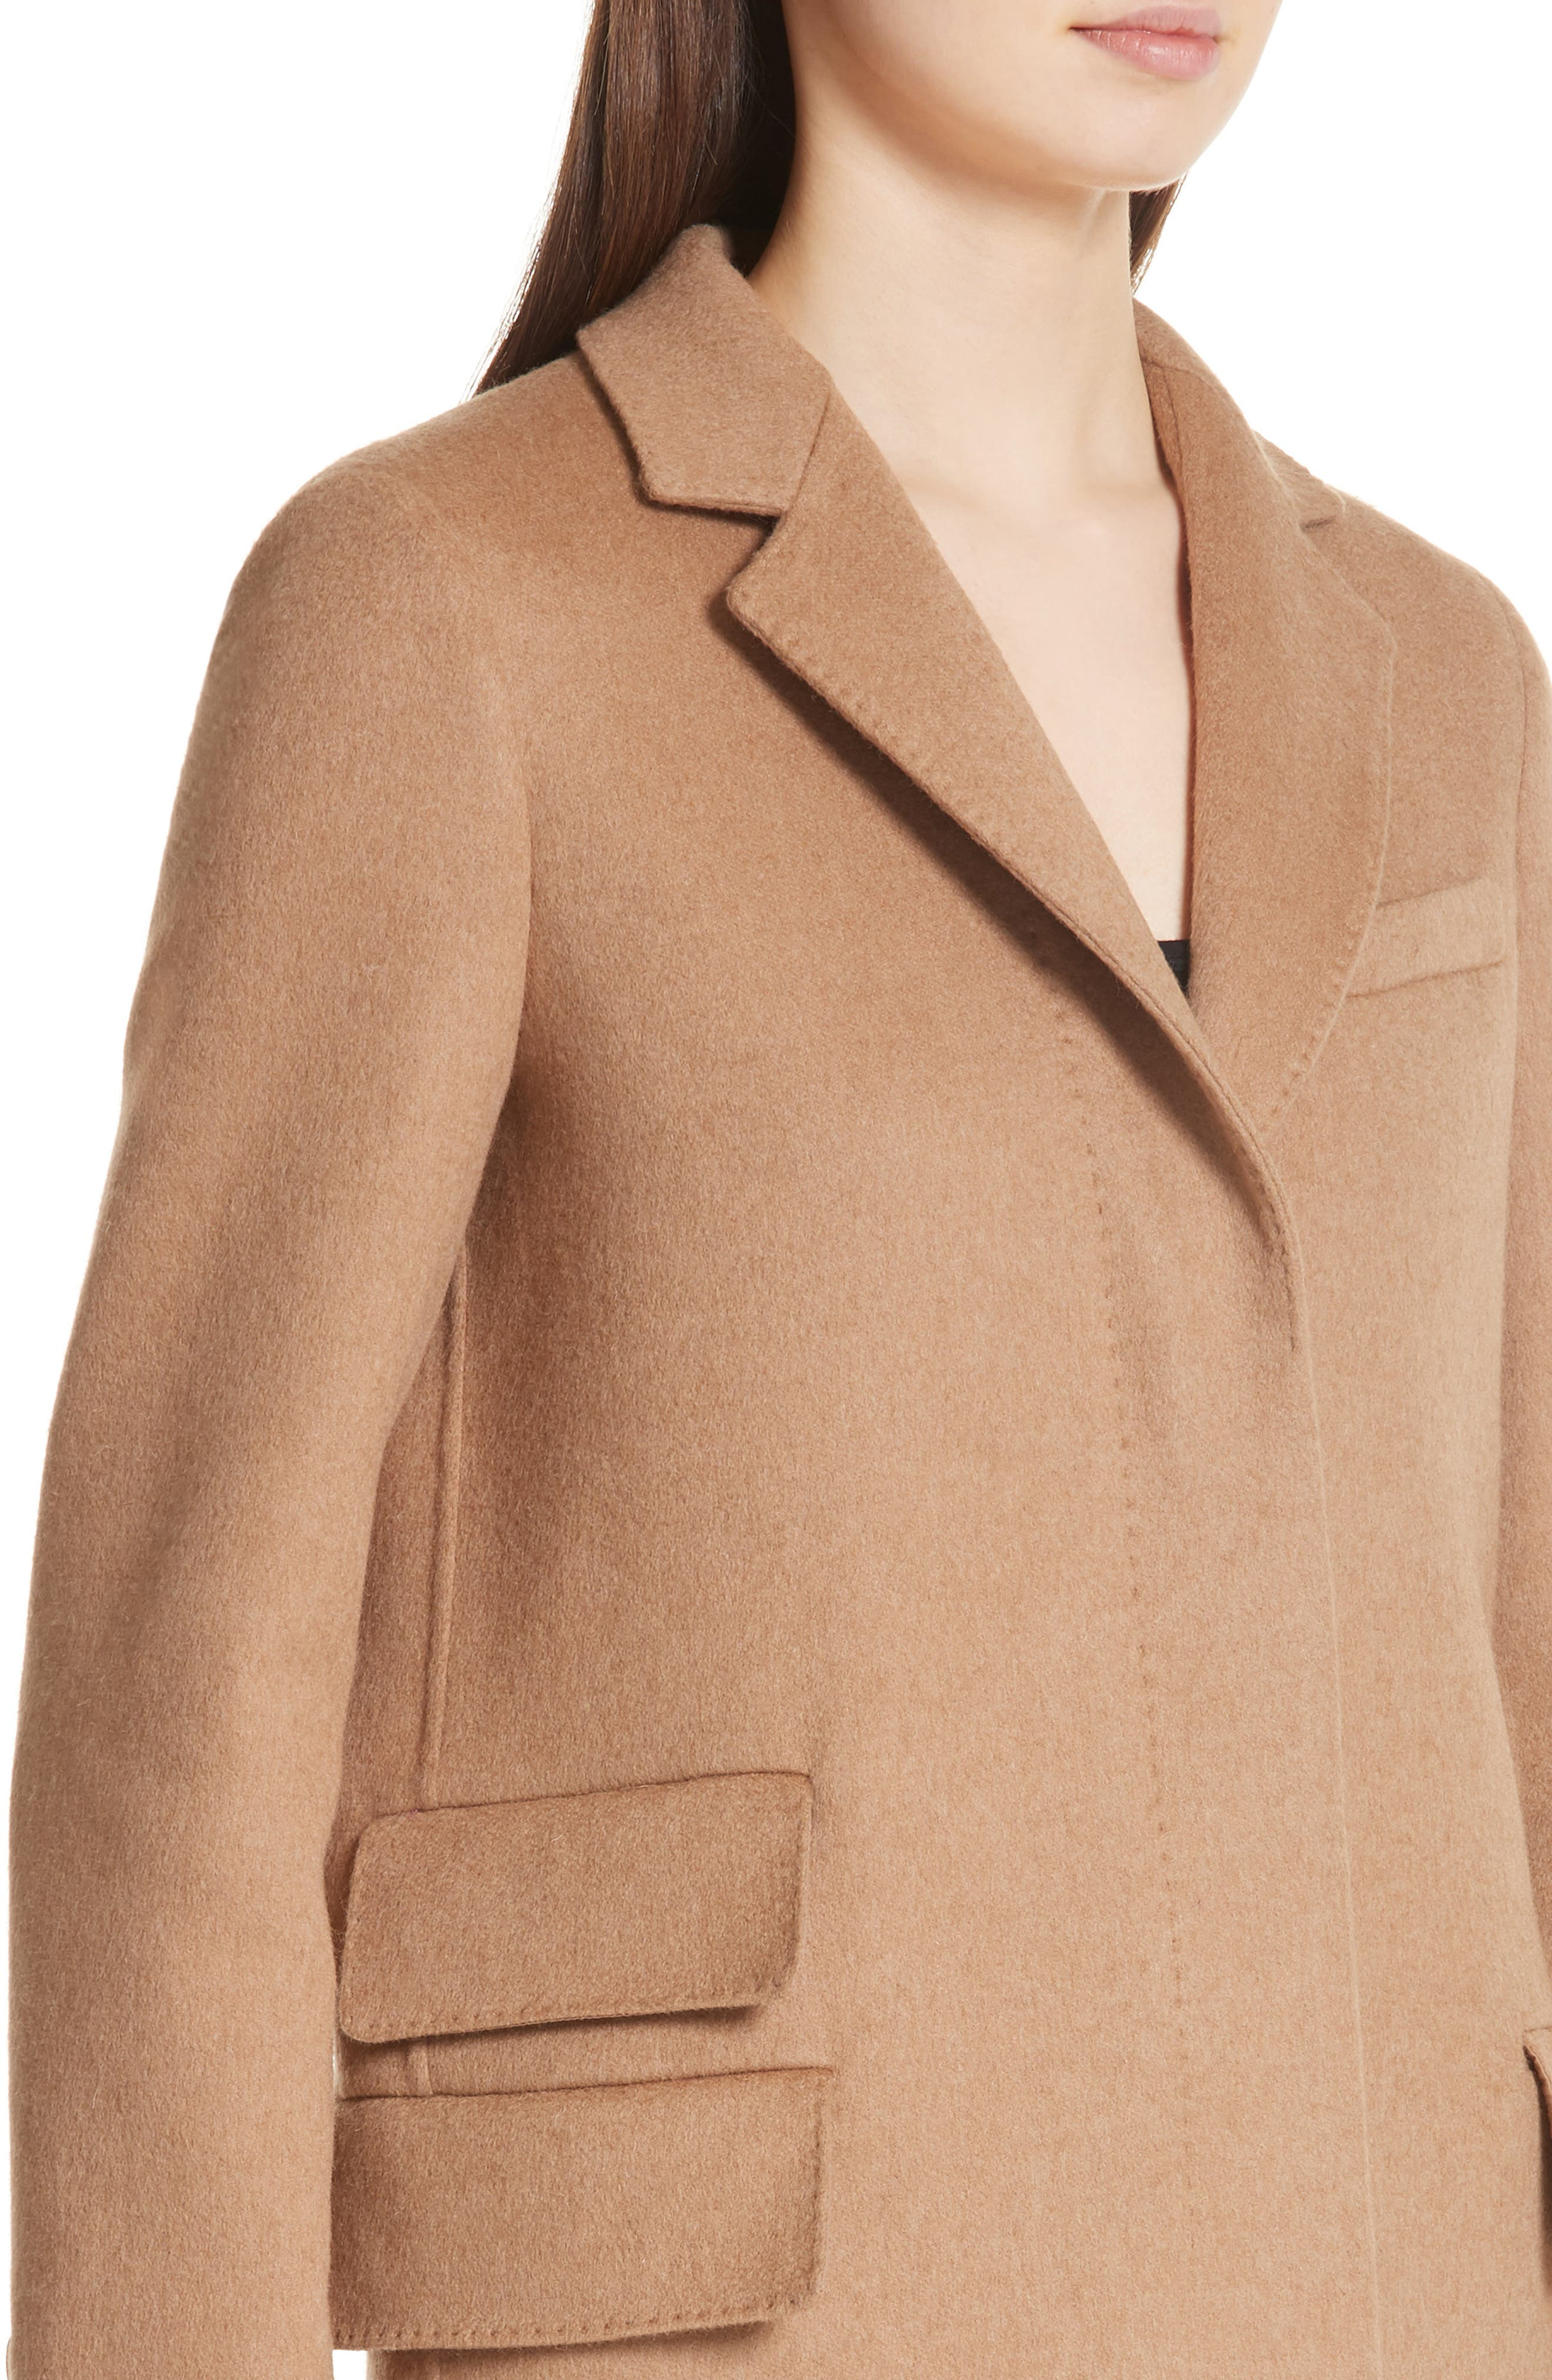 Aureo Camel Hair Coat,                             Alternate thumbnail 4, color,                             232